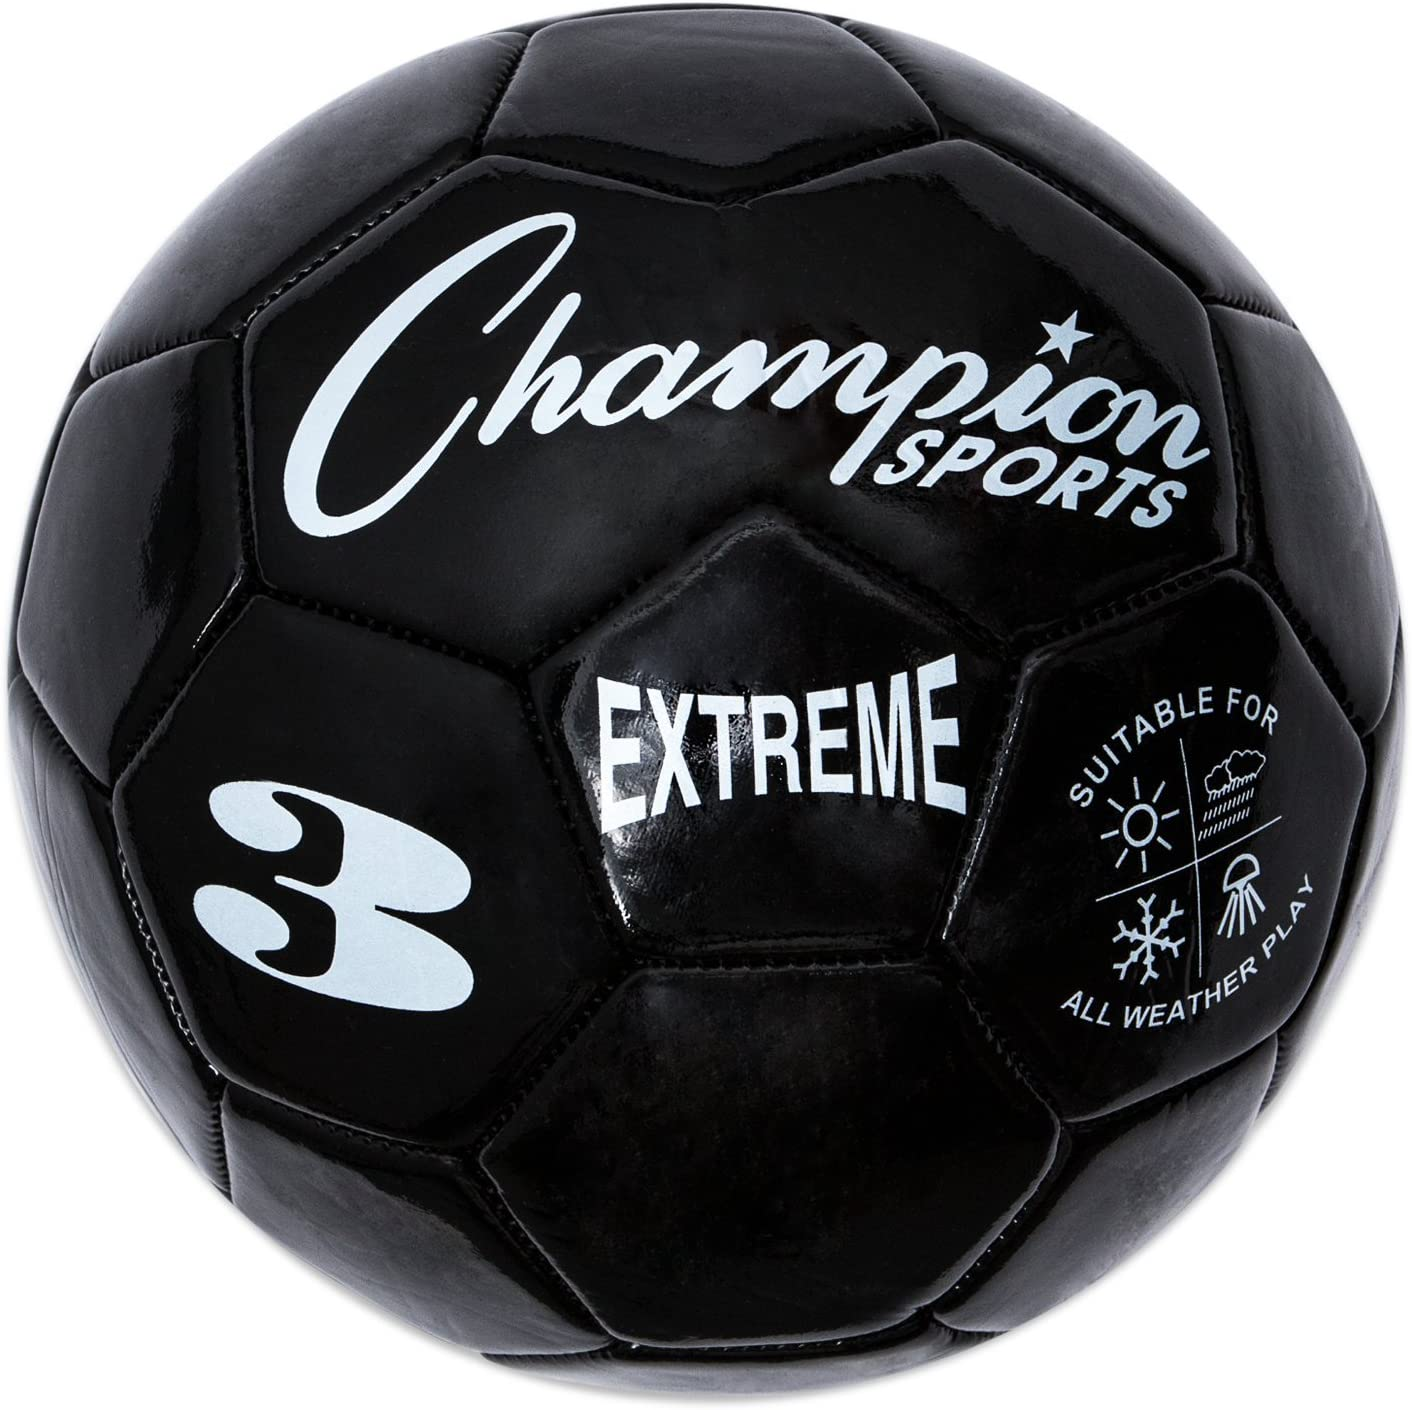 New UEFA Champion League Squeezy Soft Mini Football Soccer Stress Ball Pack of 3